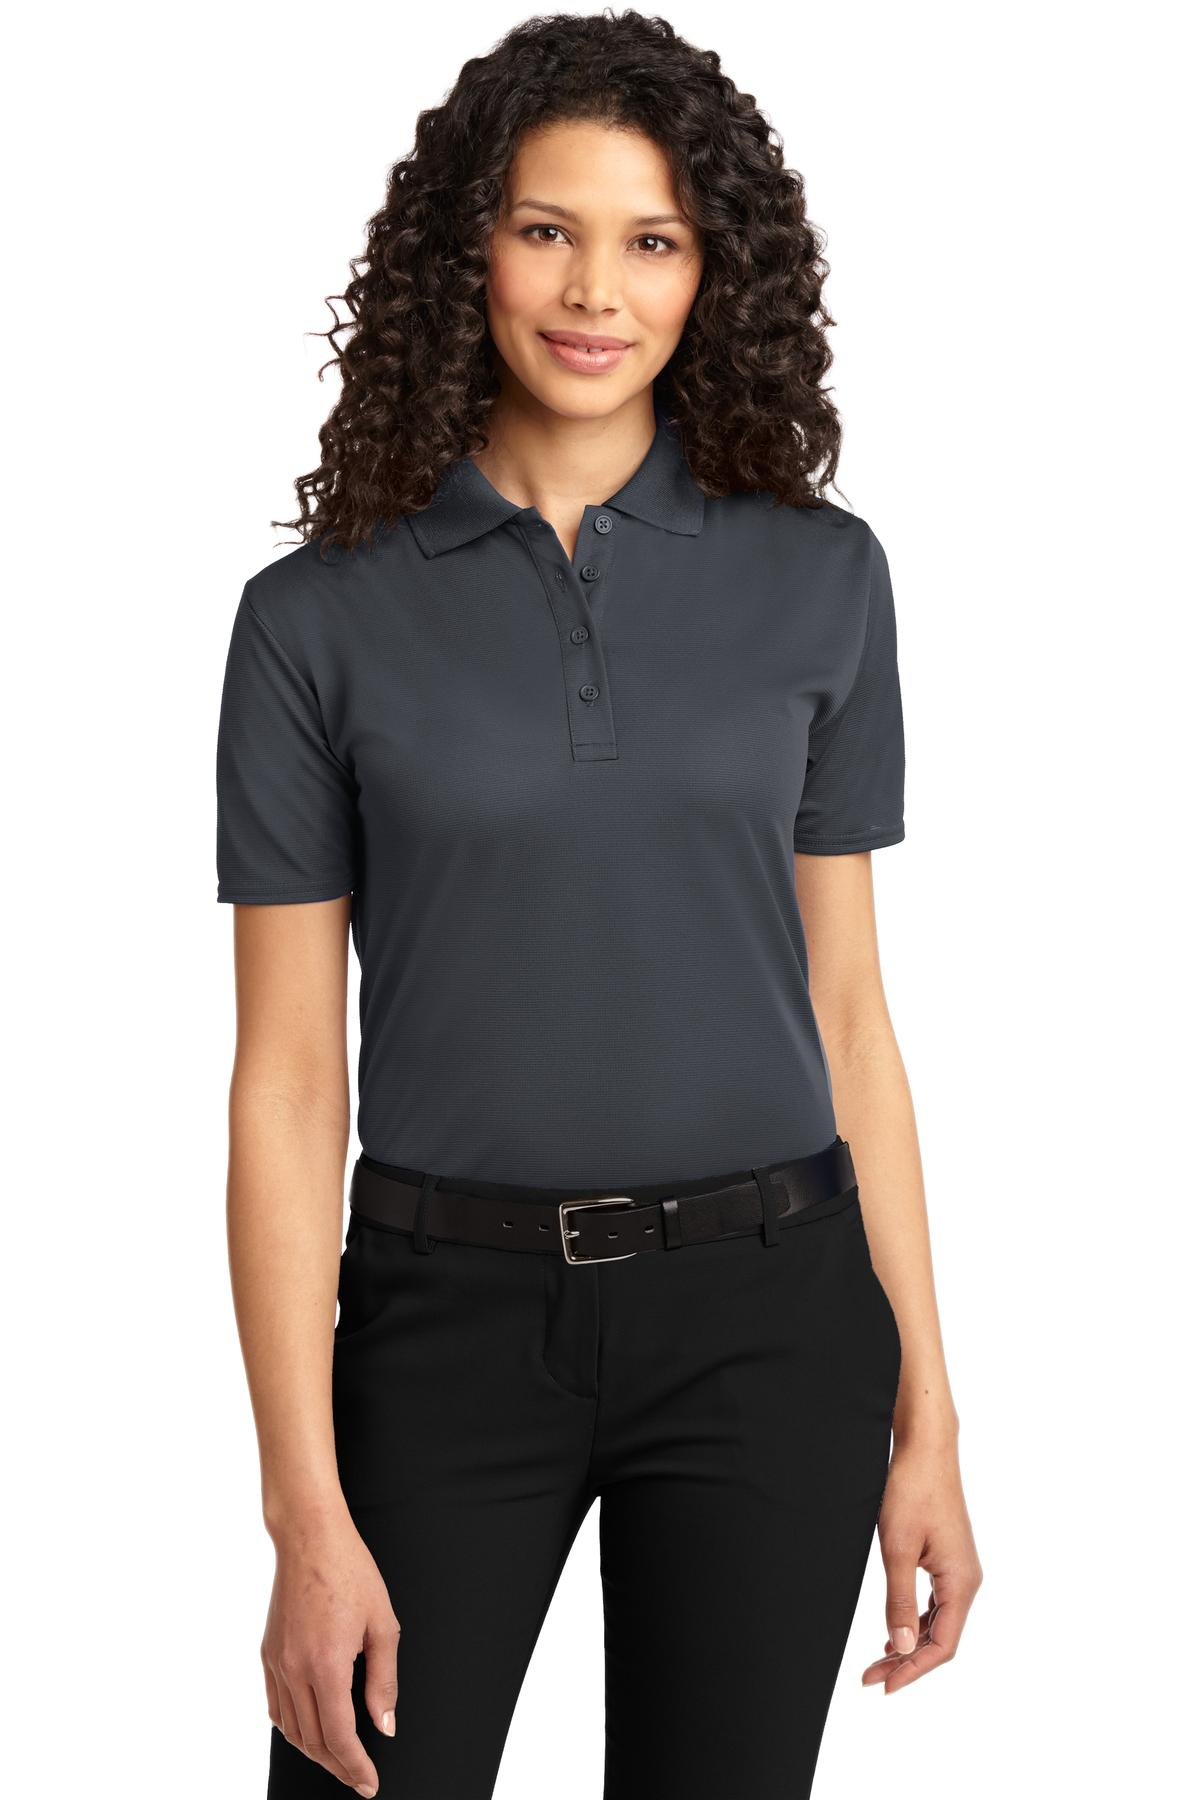 Steel Grey Port Authority Ladies Silk Touch Performance Polo.